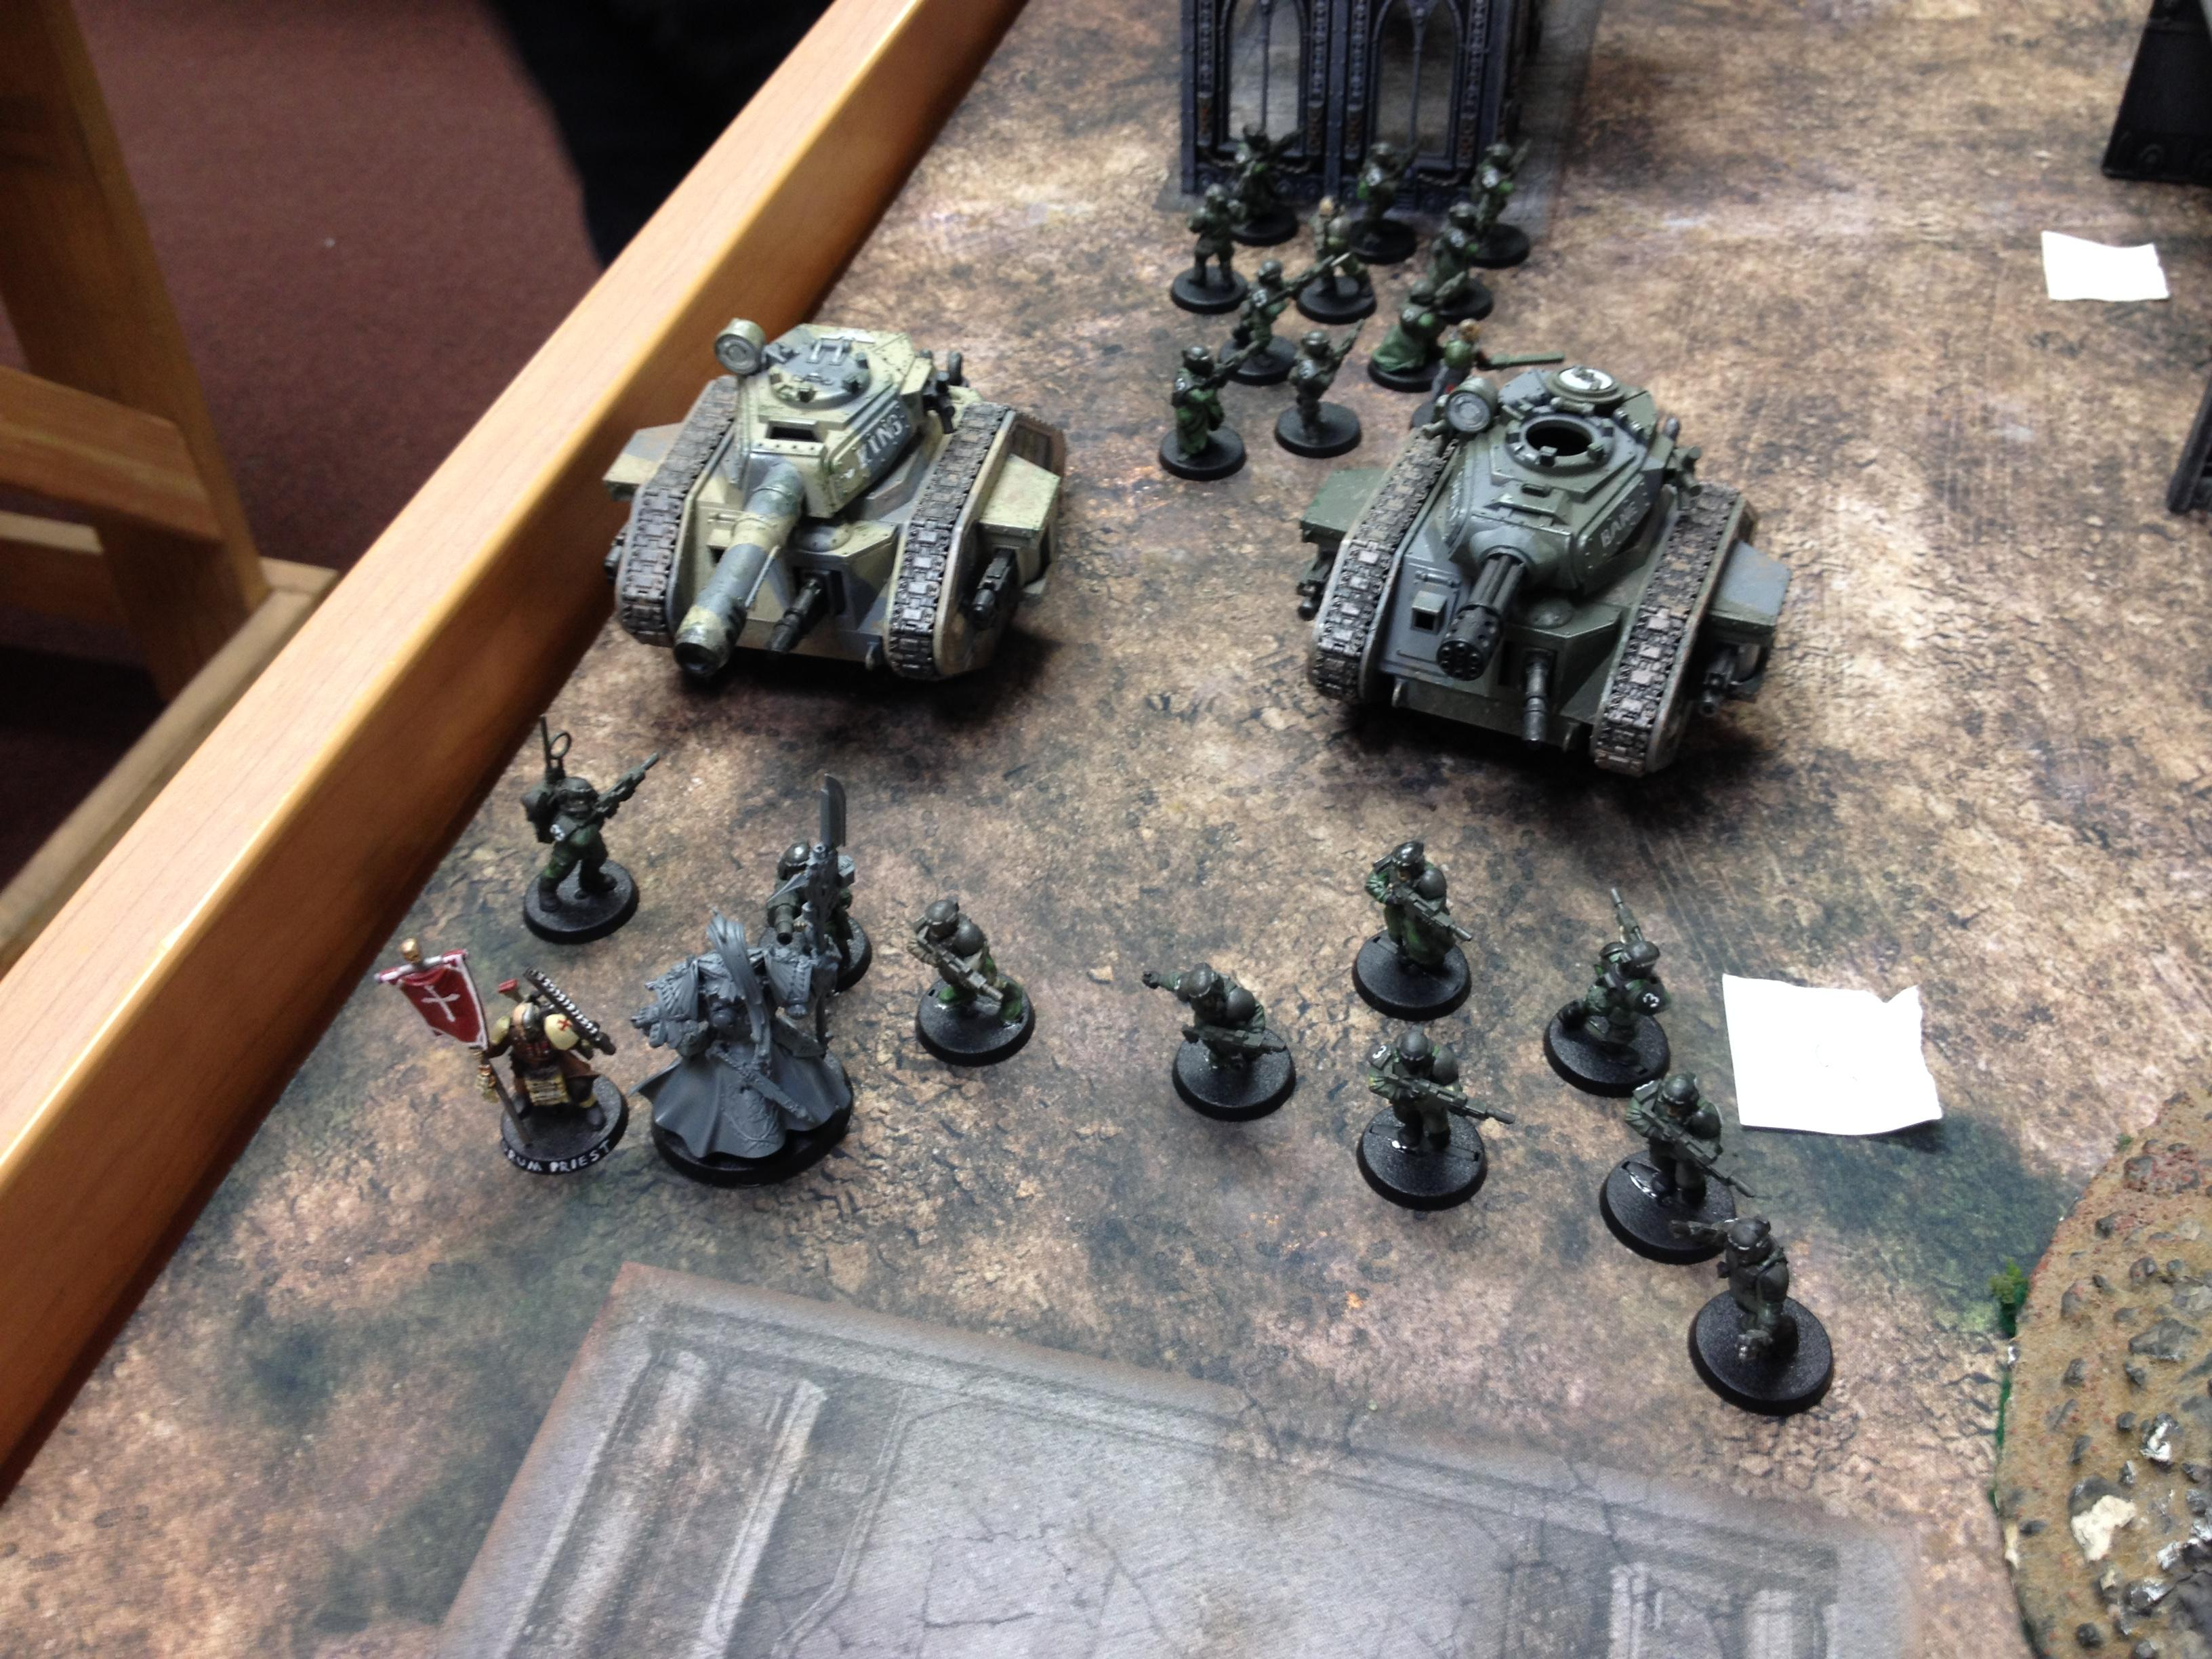 Am, Astra Militarum, Basilisk, Battle, Bullgryn, Chimera, Guard, Imperial Guard, Infantry, Leman, Ministorum Priest, Russ, Tabletop, Warhammer 40,000, Wyvern